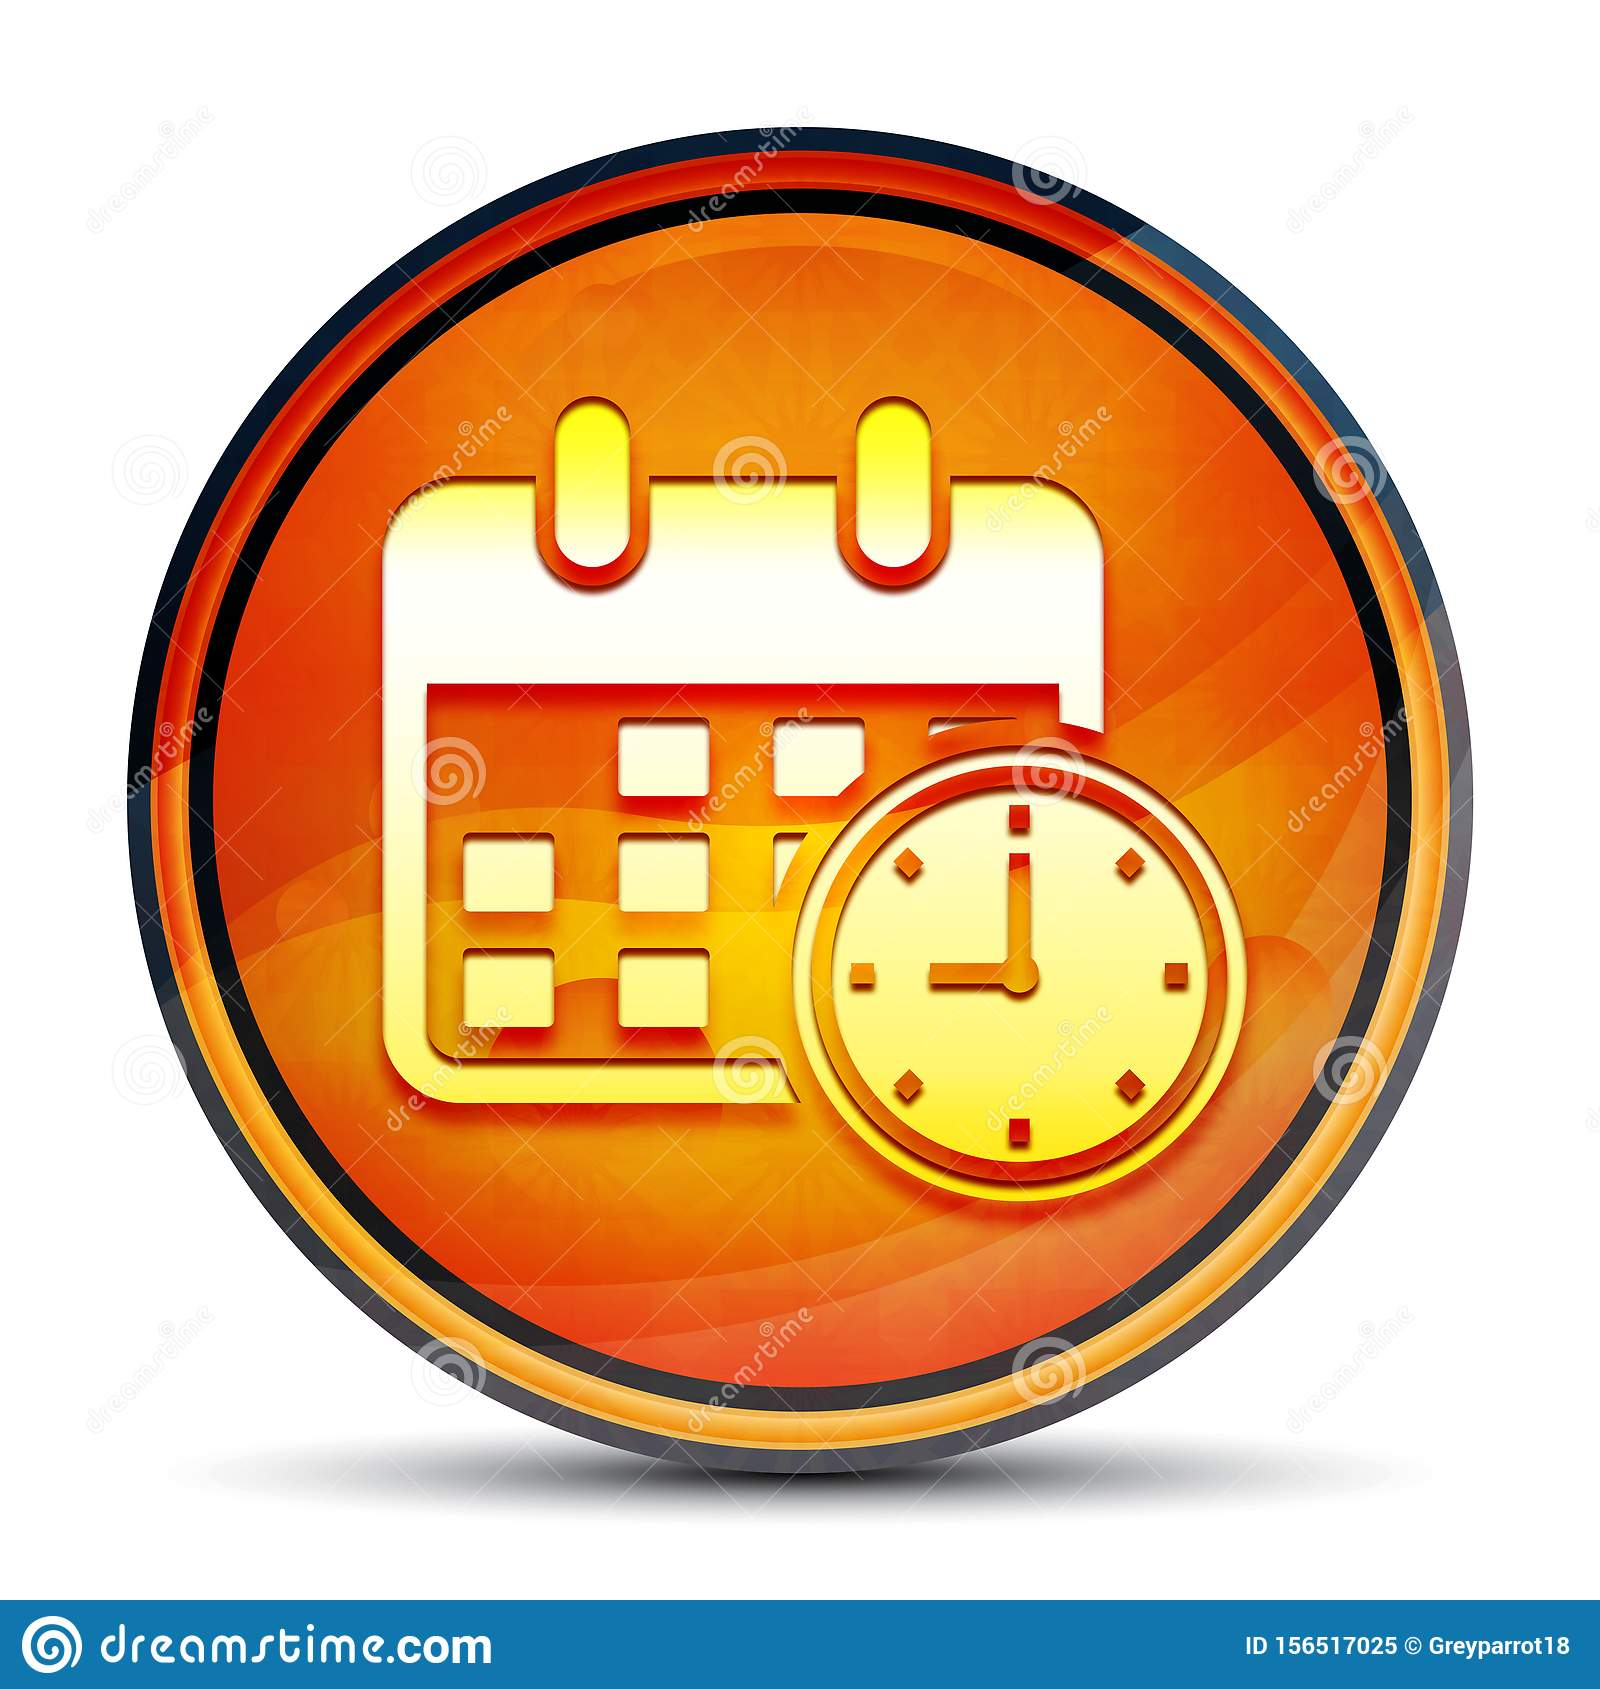 Appointment Date Calendar Icon Shiny Bright Orange Round Button Illustration Stock Illustration Illustration Of Reminder Abstract 156517025 Nokia objects icons office other other brands phones icons popular rss feeds smartphones soccer social bookmarks sony sport icons statistics transport valentine's day vehicles icons world flags. https www dreamstime com appointment date calendar icon shiny bright orange round button illustration isolated image156517025